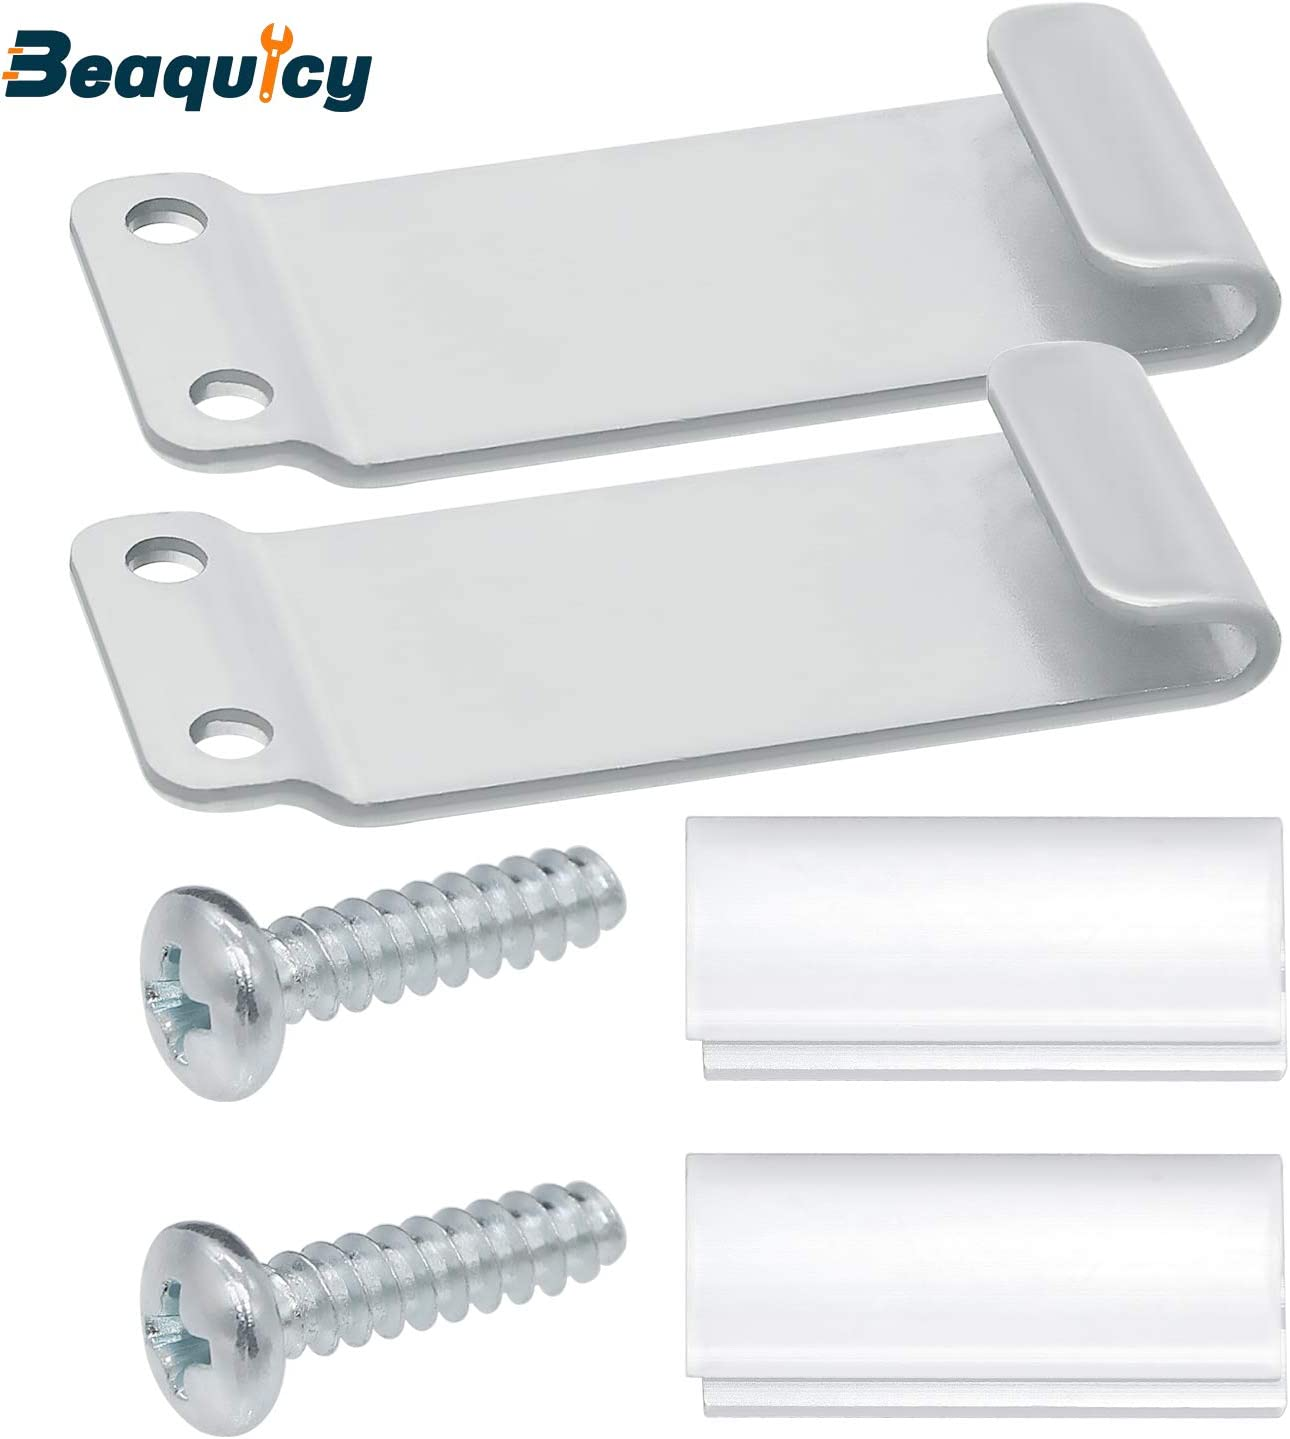 W10761316 Replacement for Whirlpool Standard and Long Vent Dryer /& Washer Replaces W10298318 Beaquicy W10869845 Dryer Stacking Kit W10298318RP